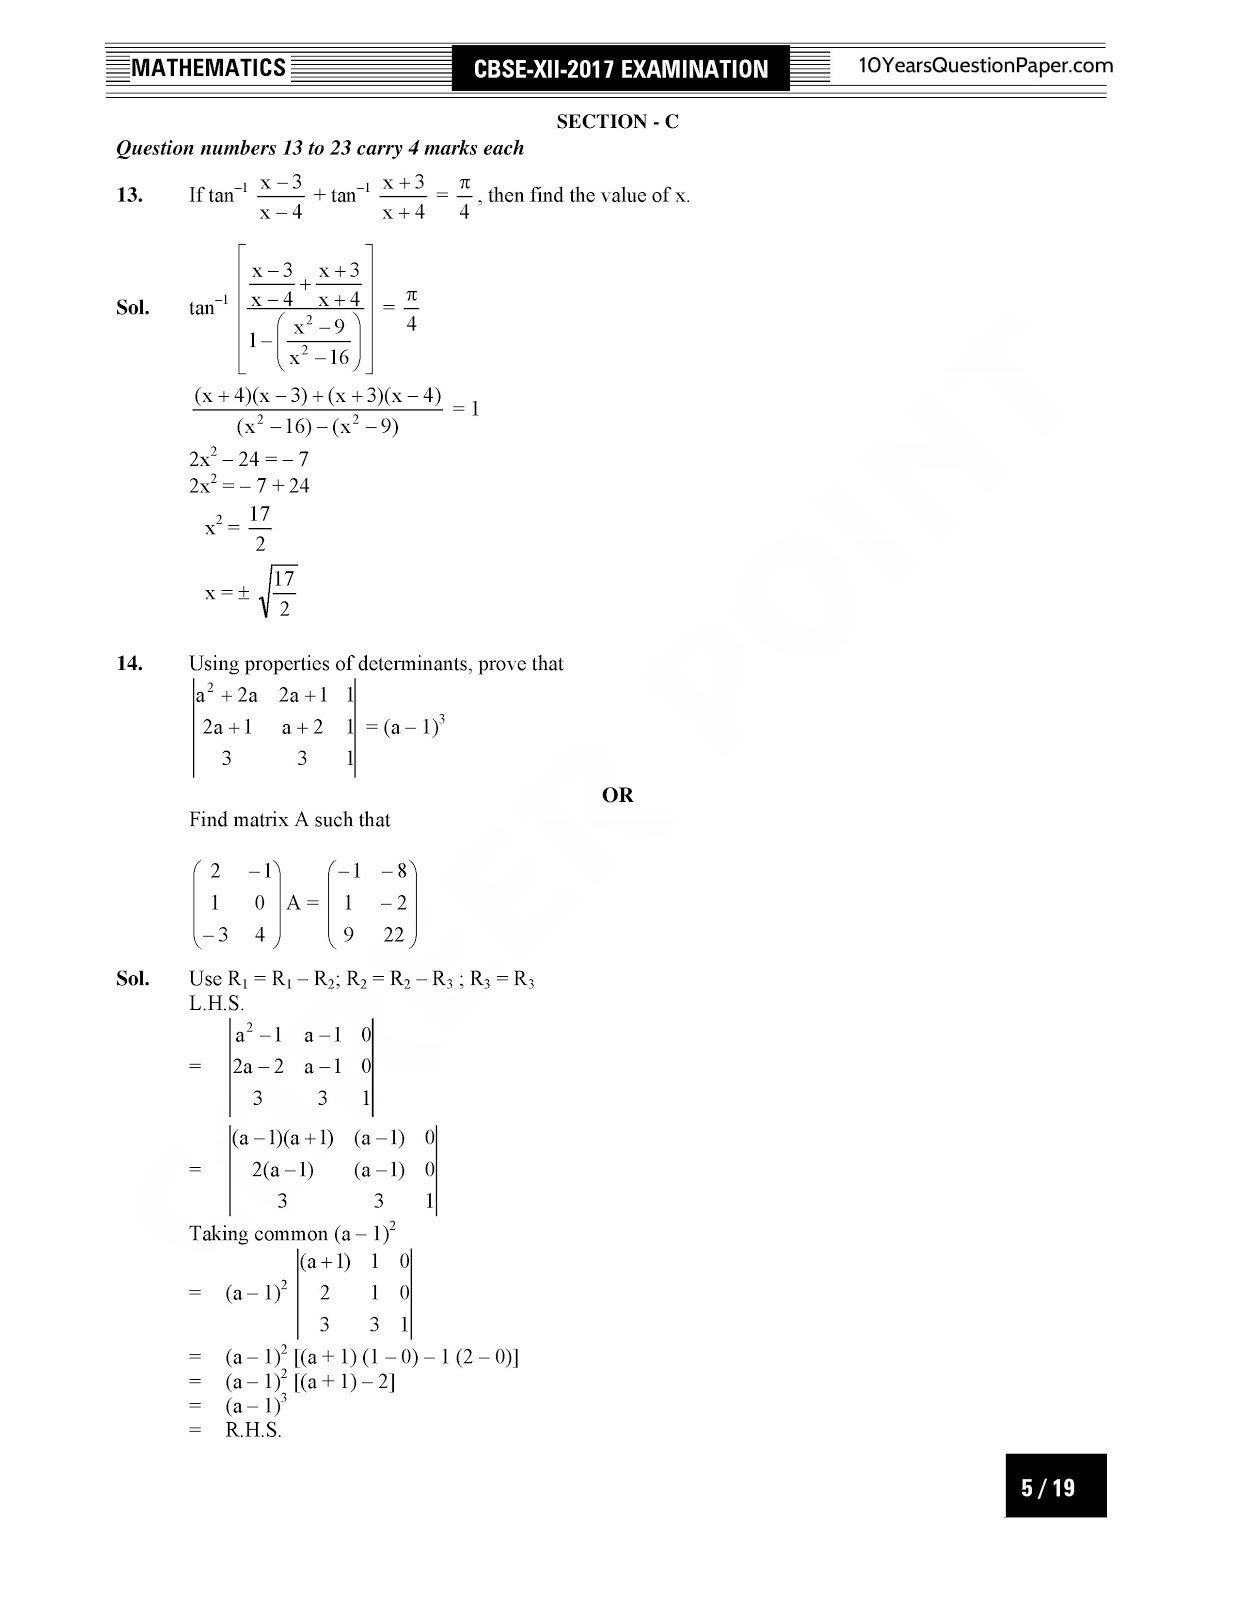 CBSE class 12th 2017 Mathematics Answer Key